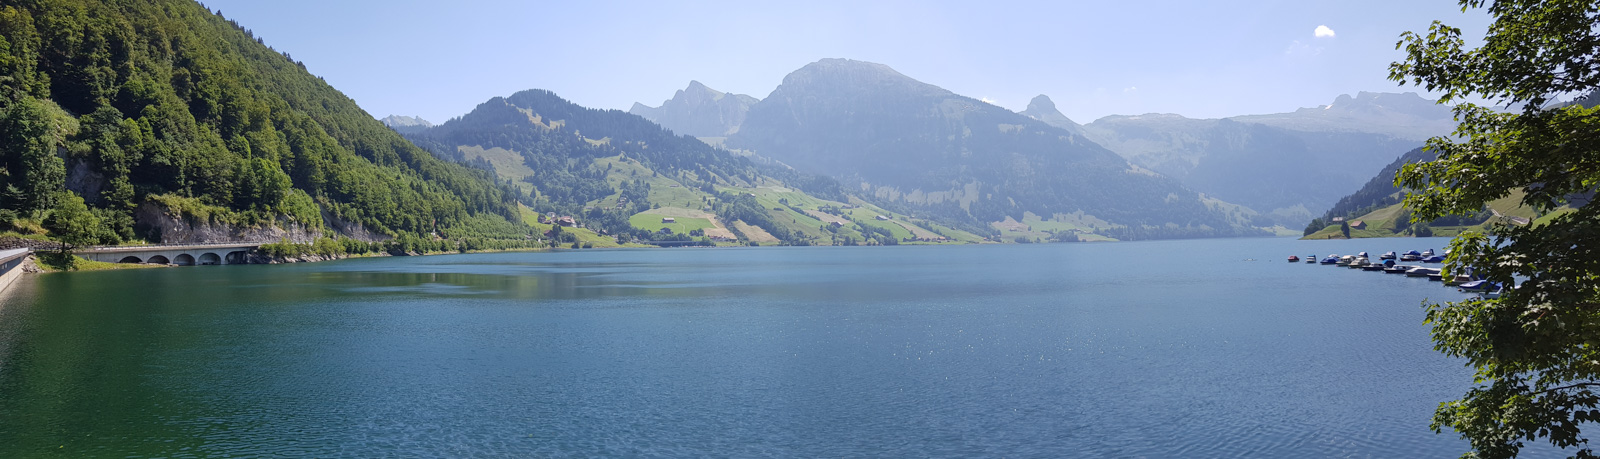 Waegitalersee